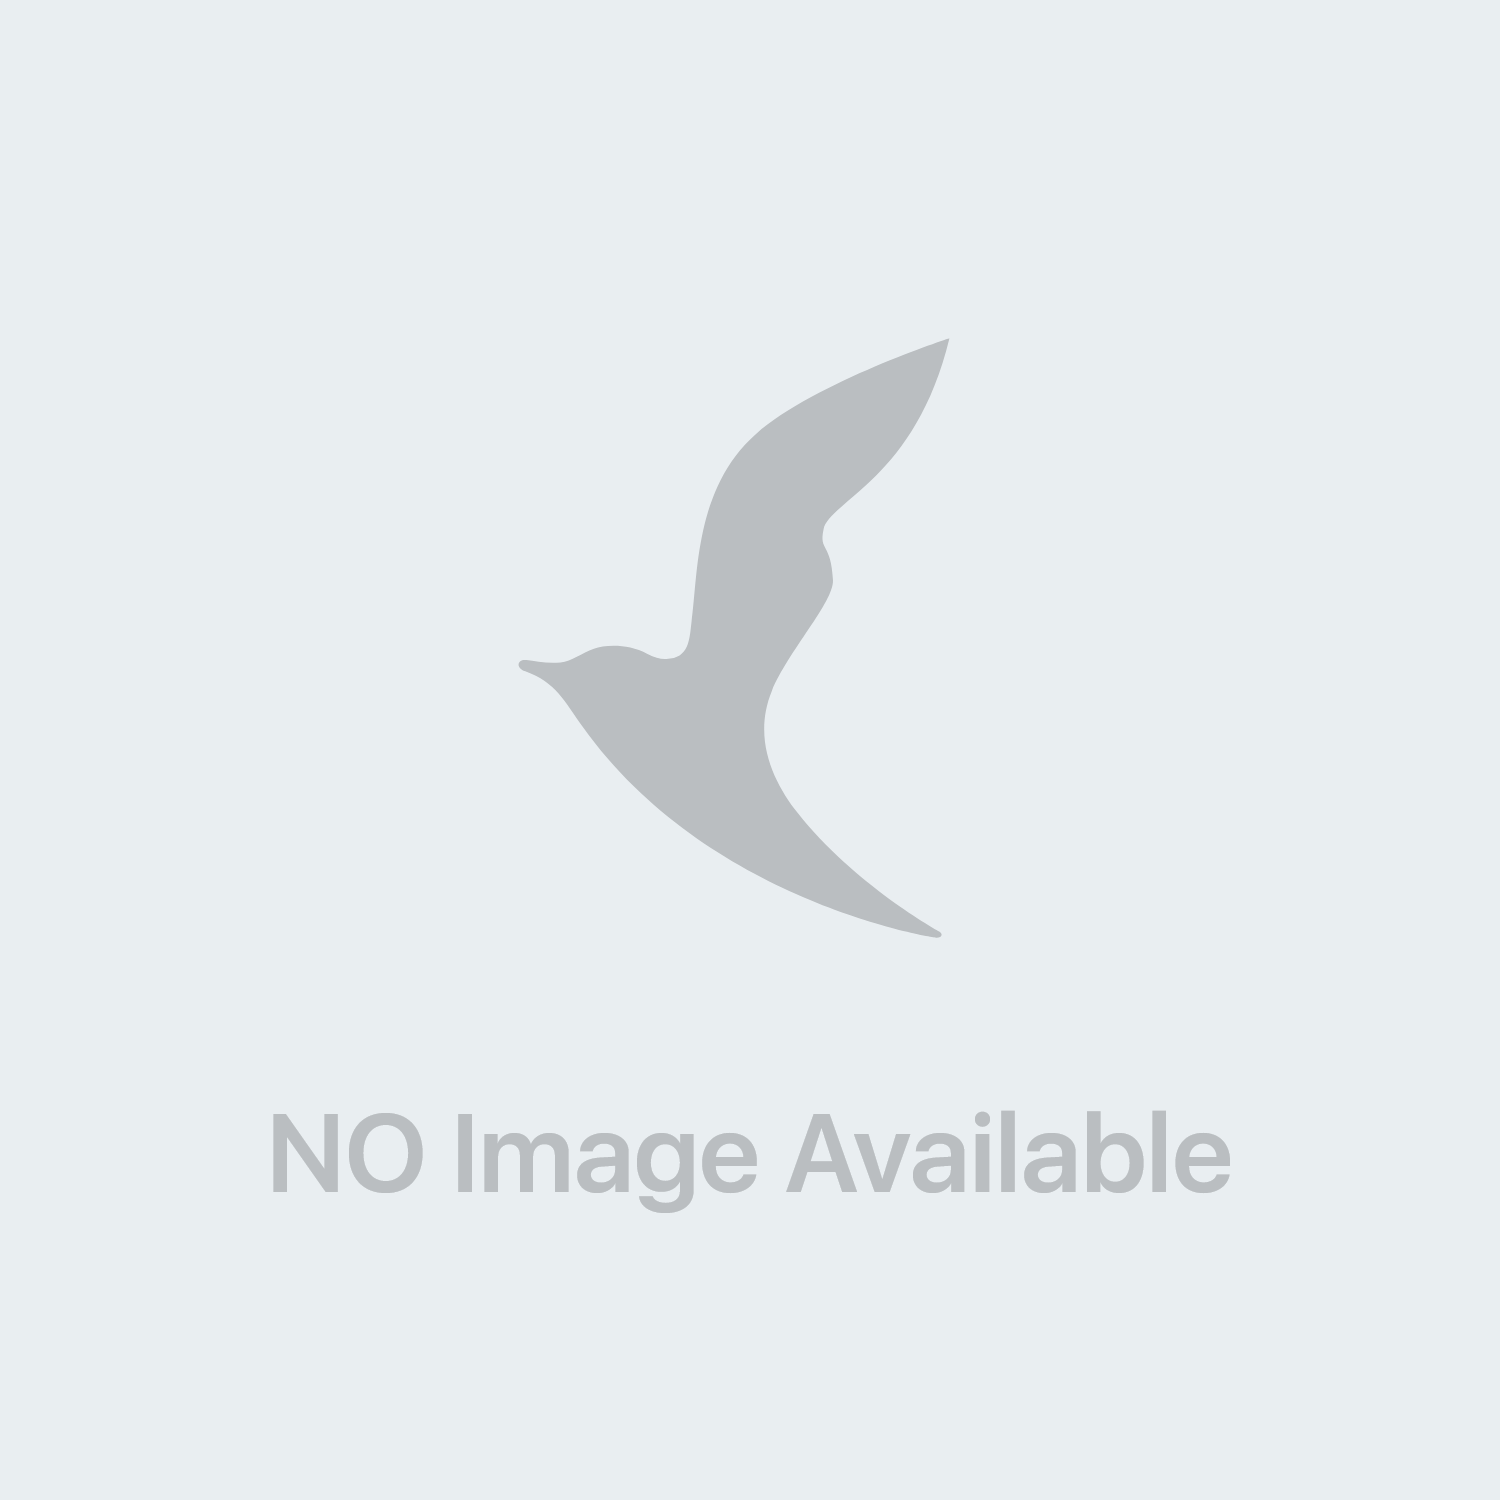 Trio Carbone Gas Control Integratore Intestinale 7 Flaconcini 10 Ml